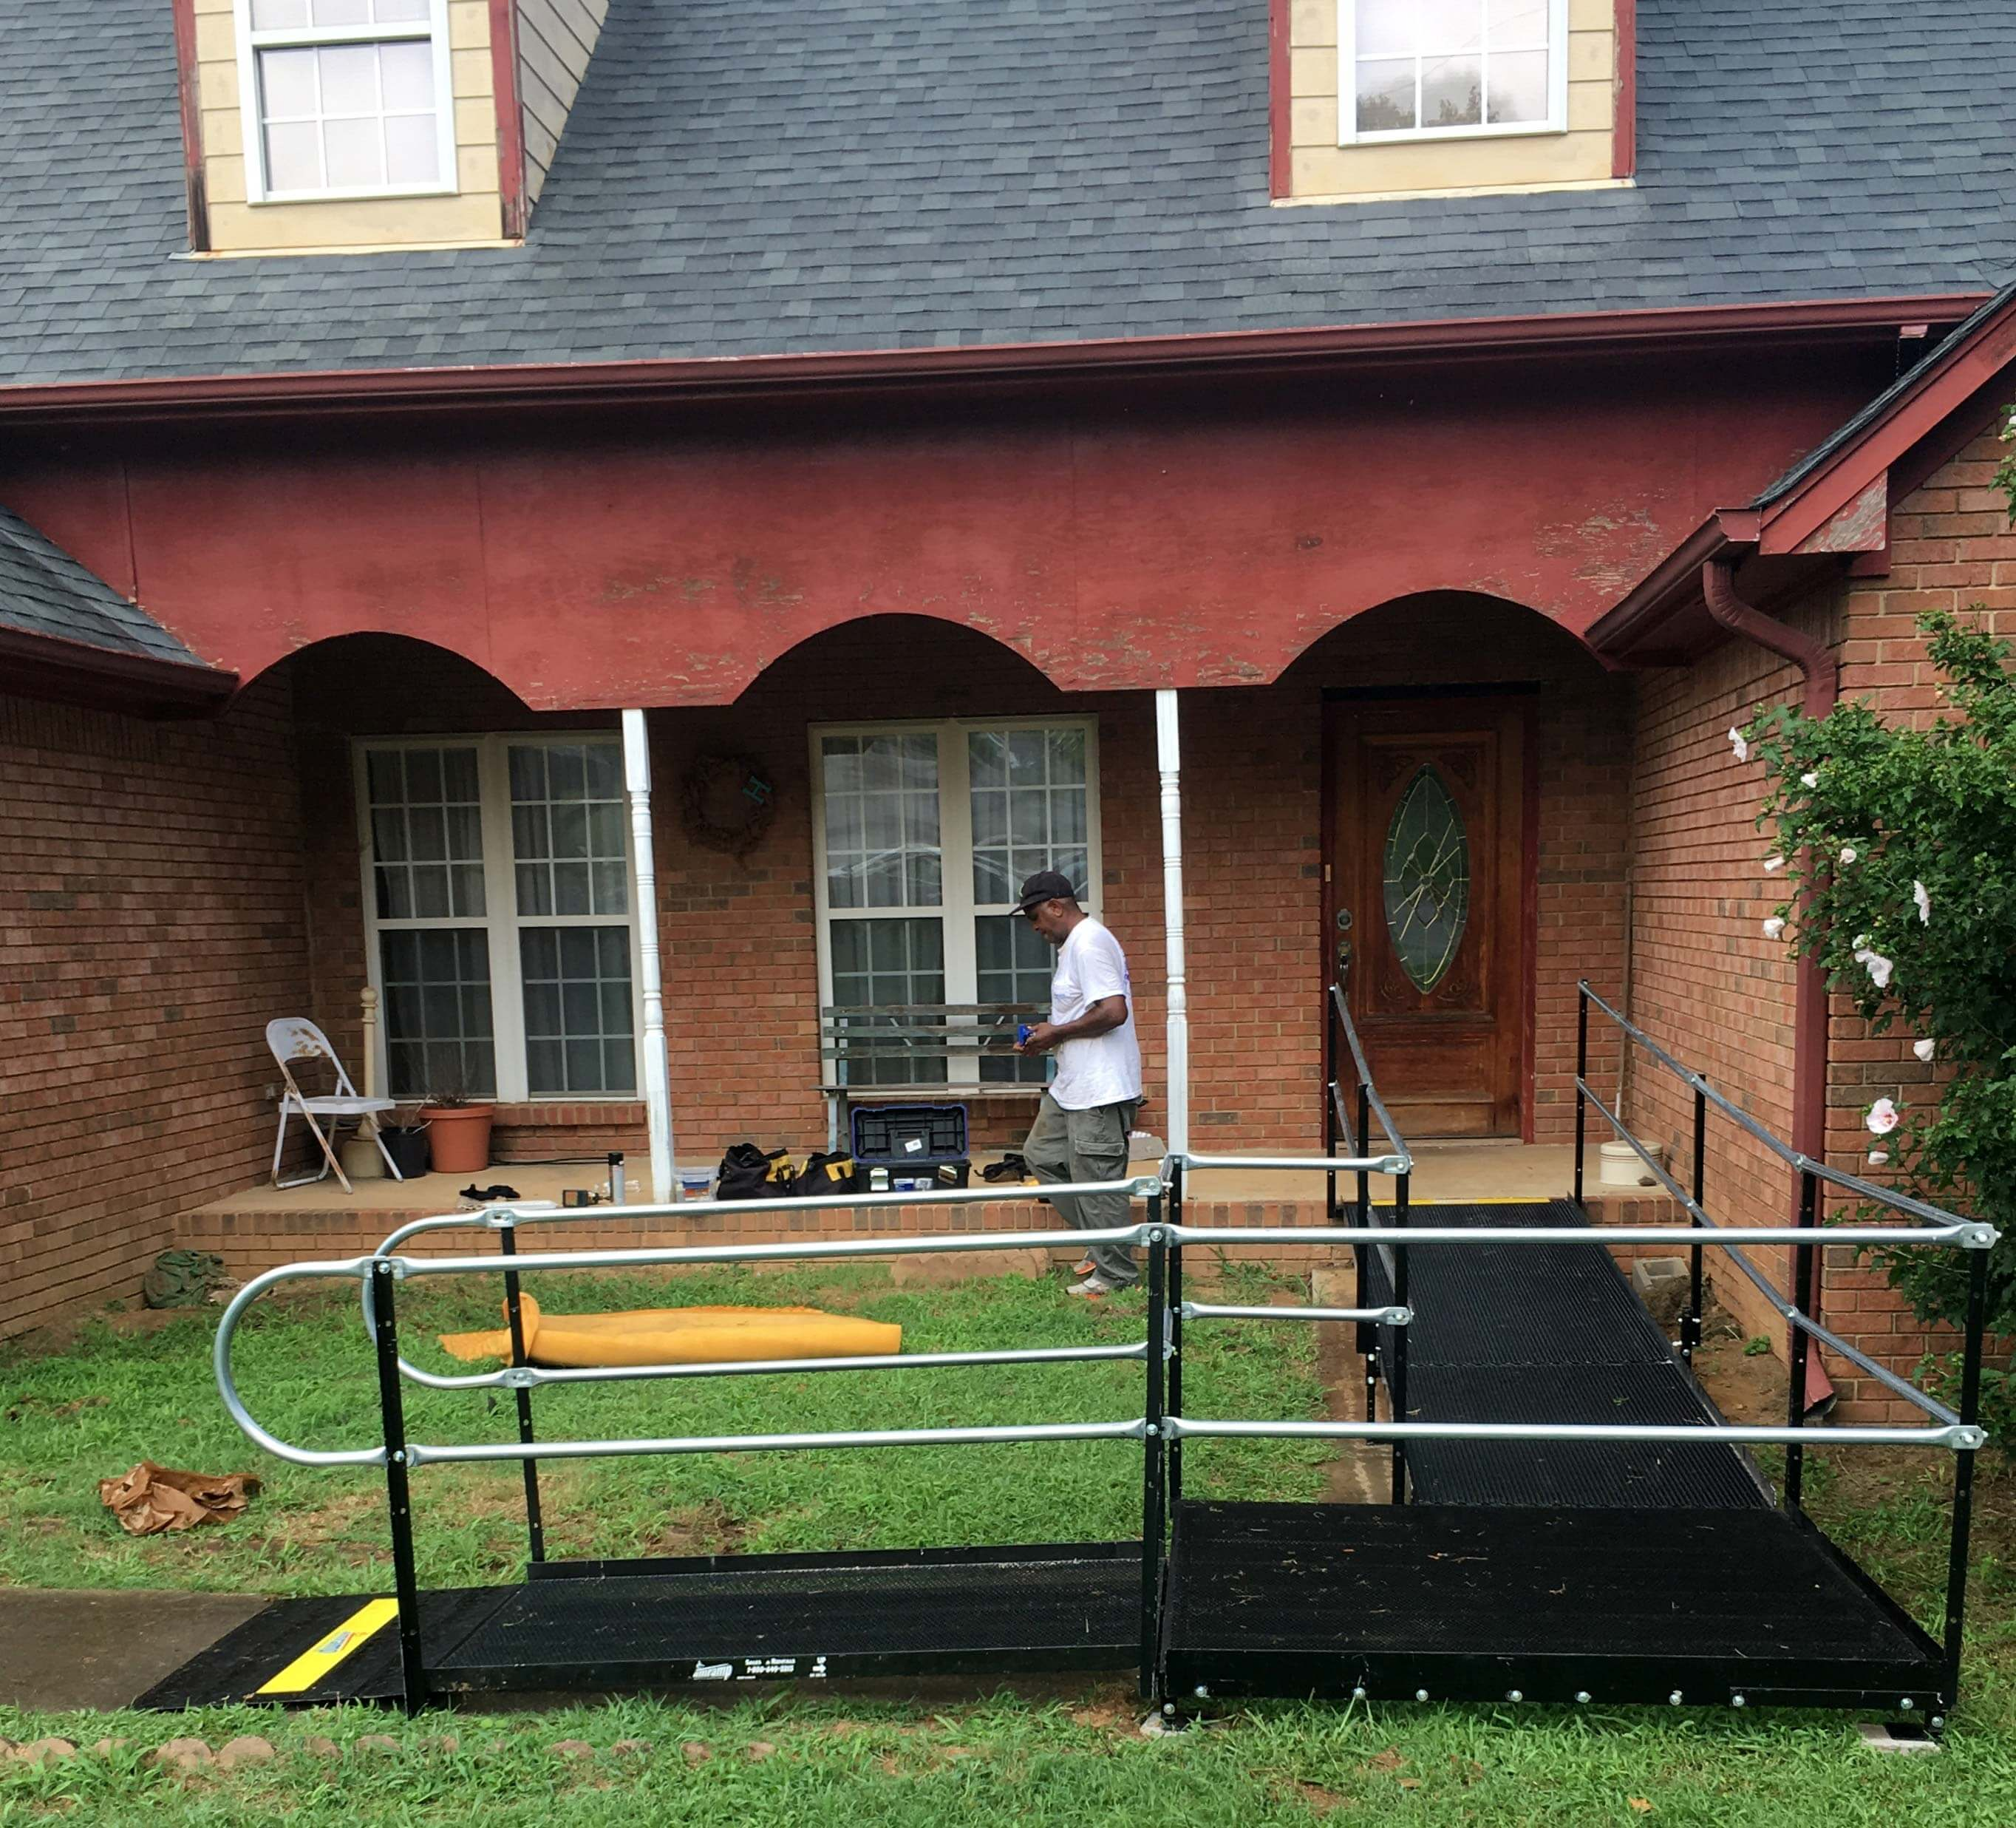 John Cochran and the Amramp Birmingham team installed this wheelchair ramp in Kimberly, AL.